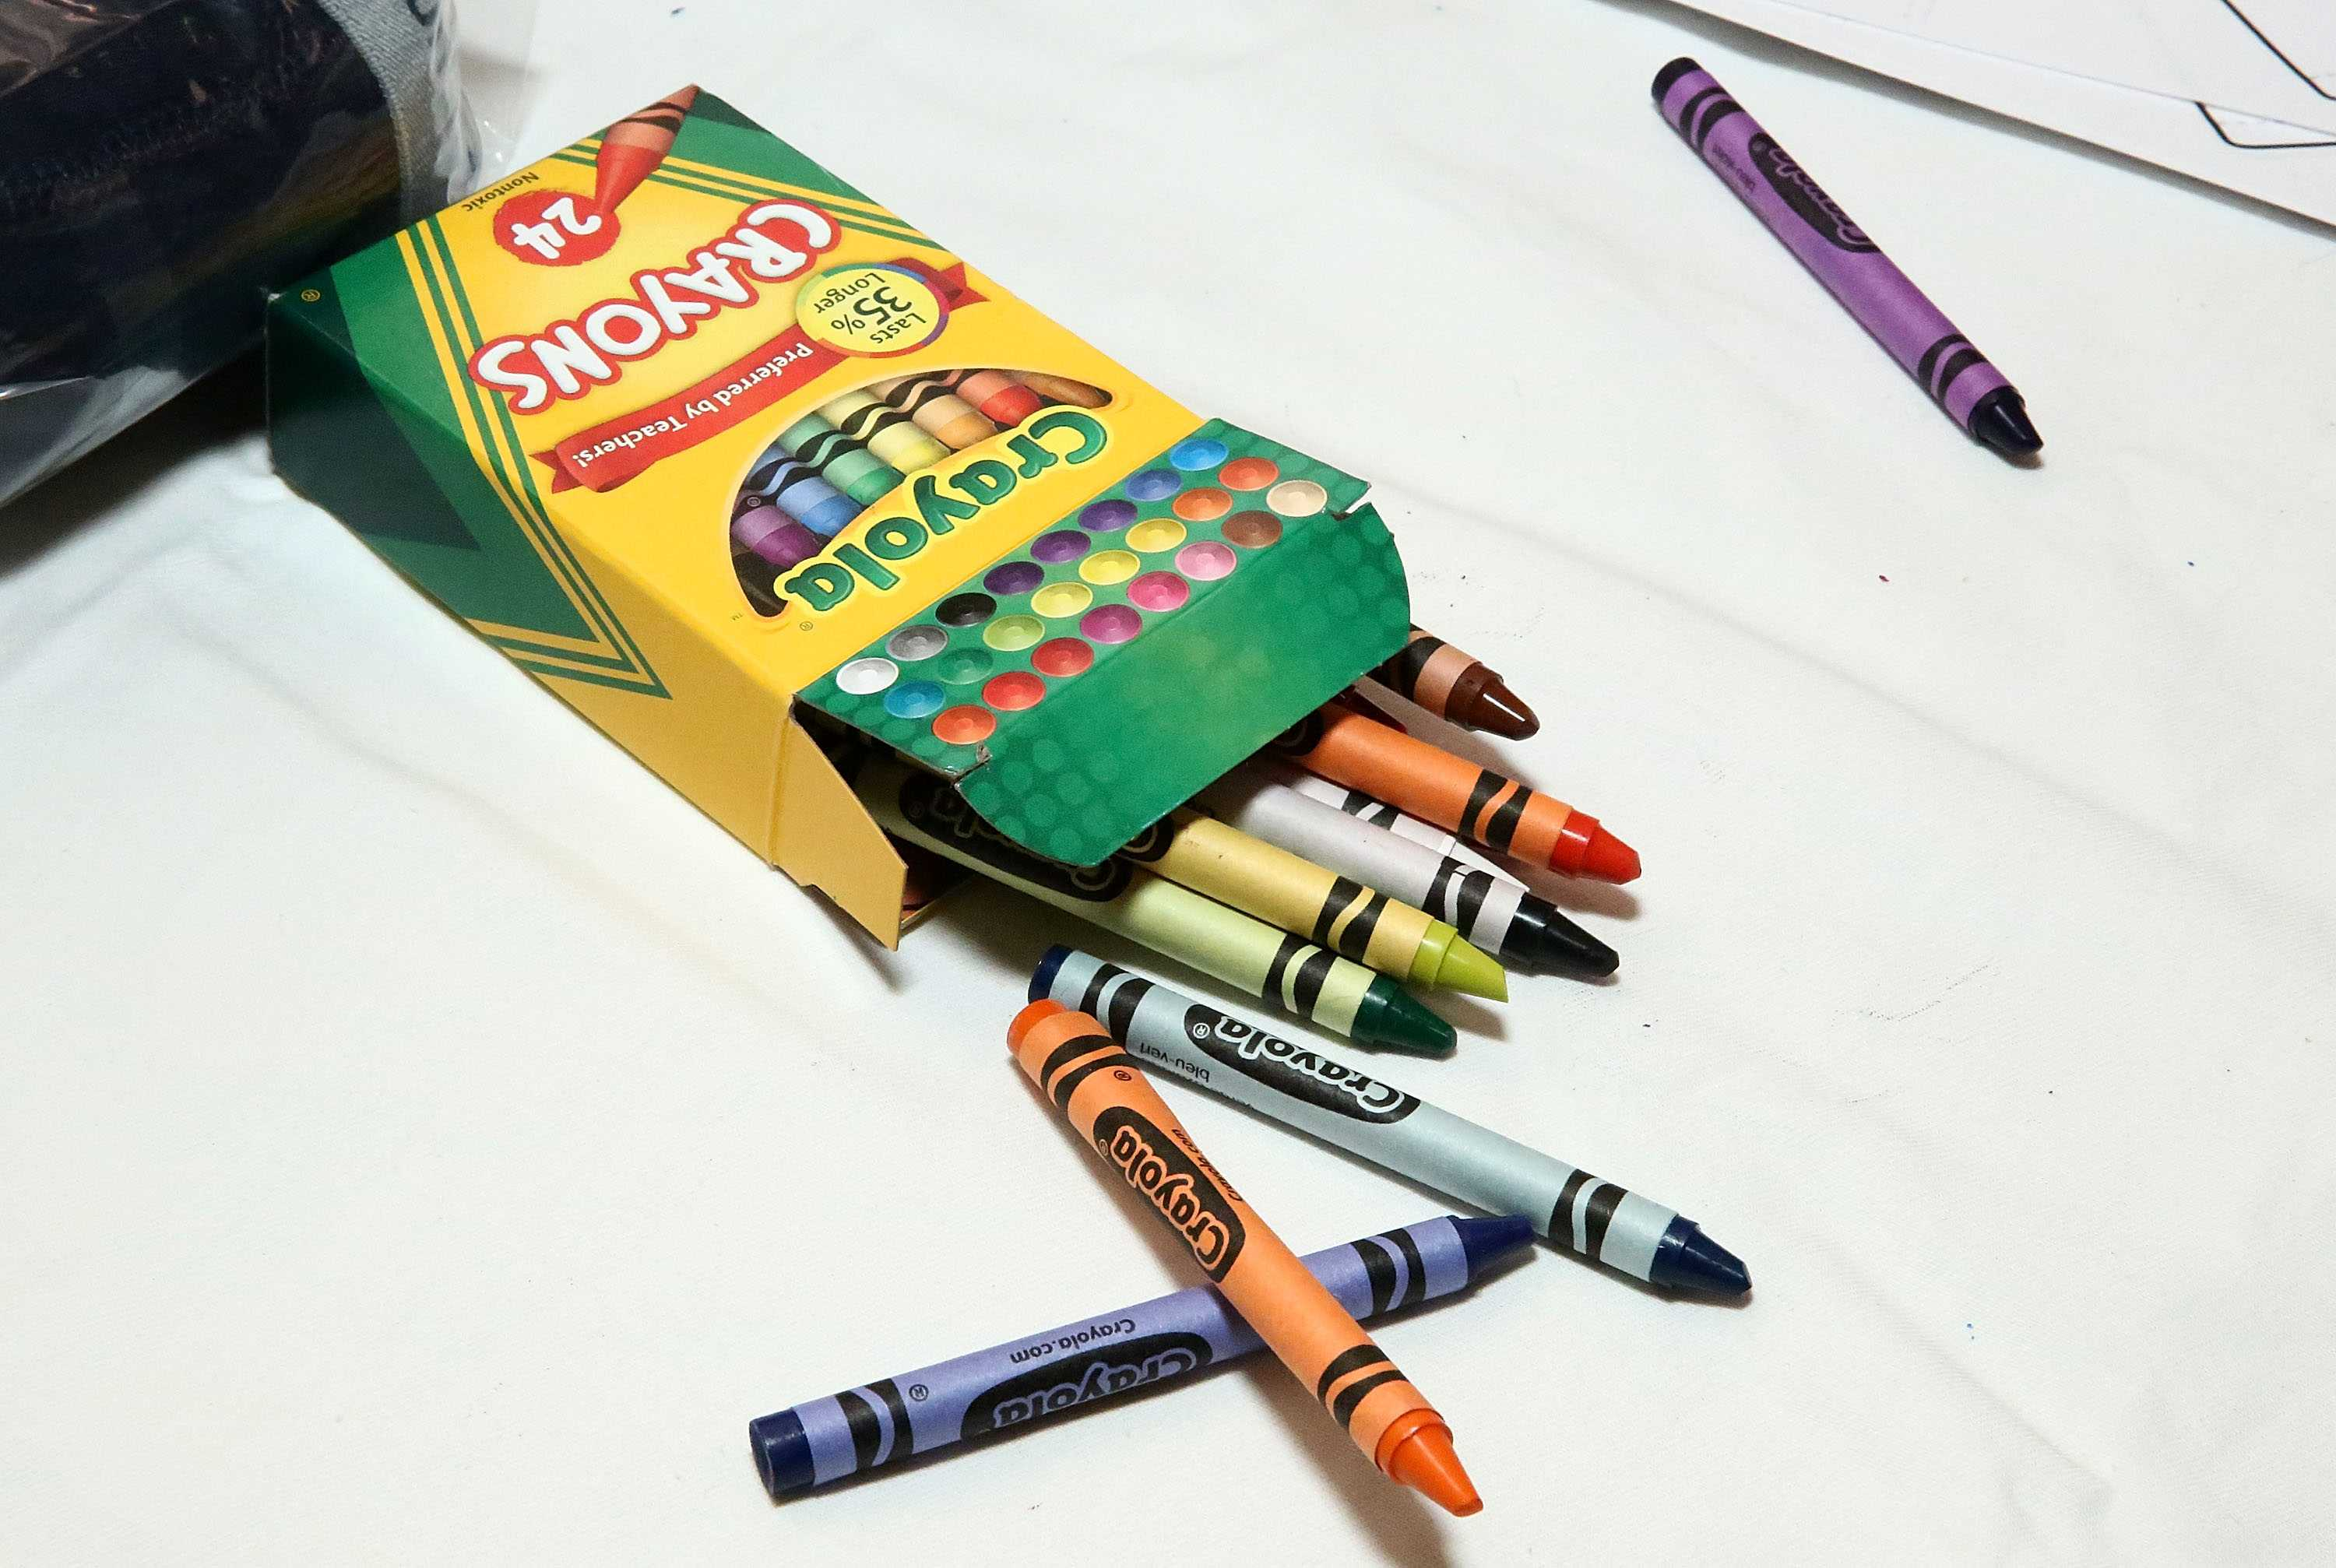 Crayola boots dandelion for bluish crayon yet to be named